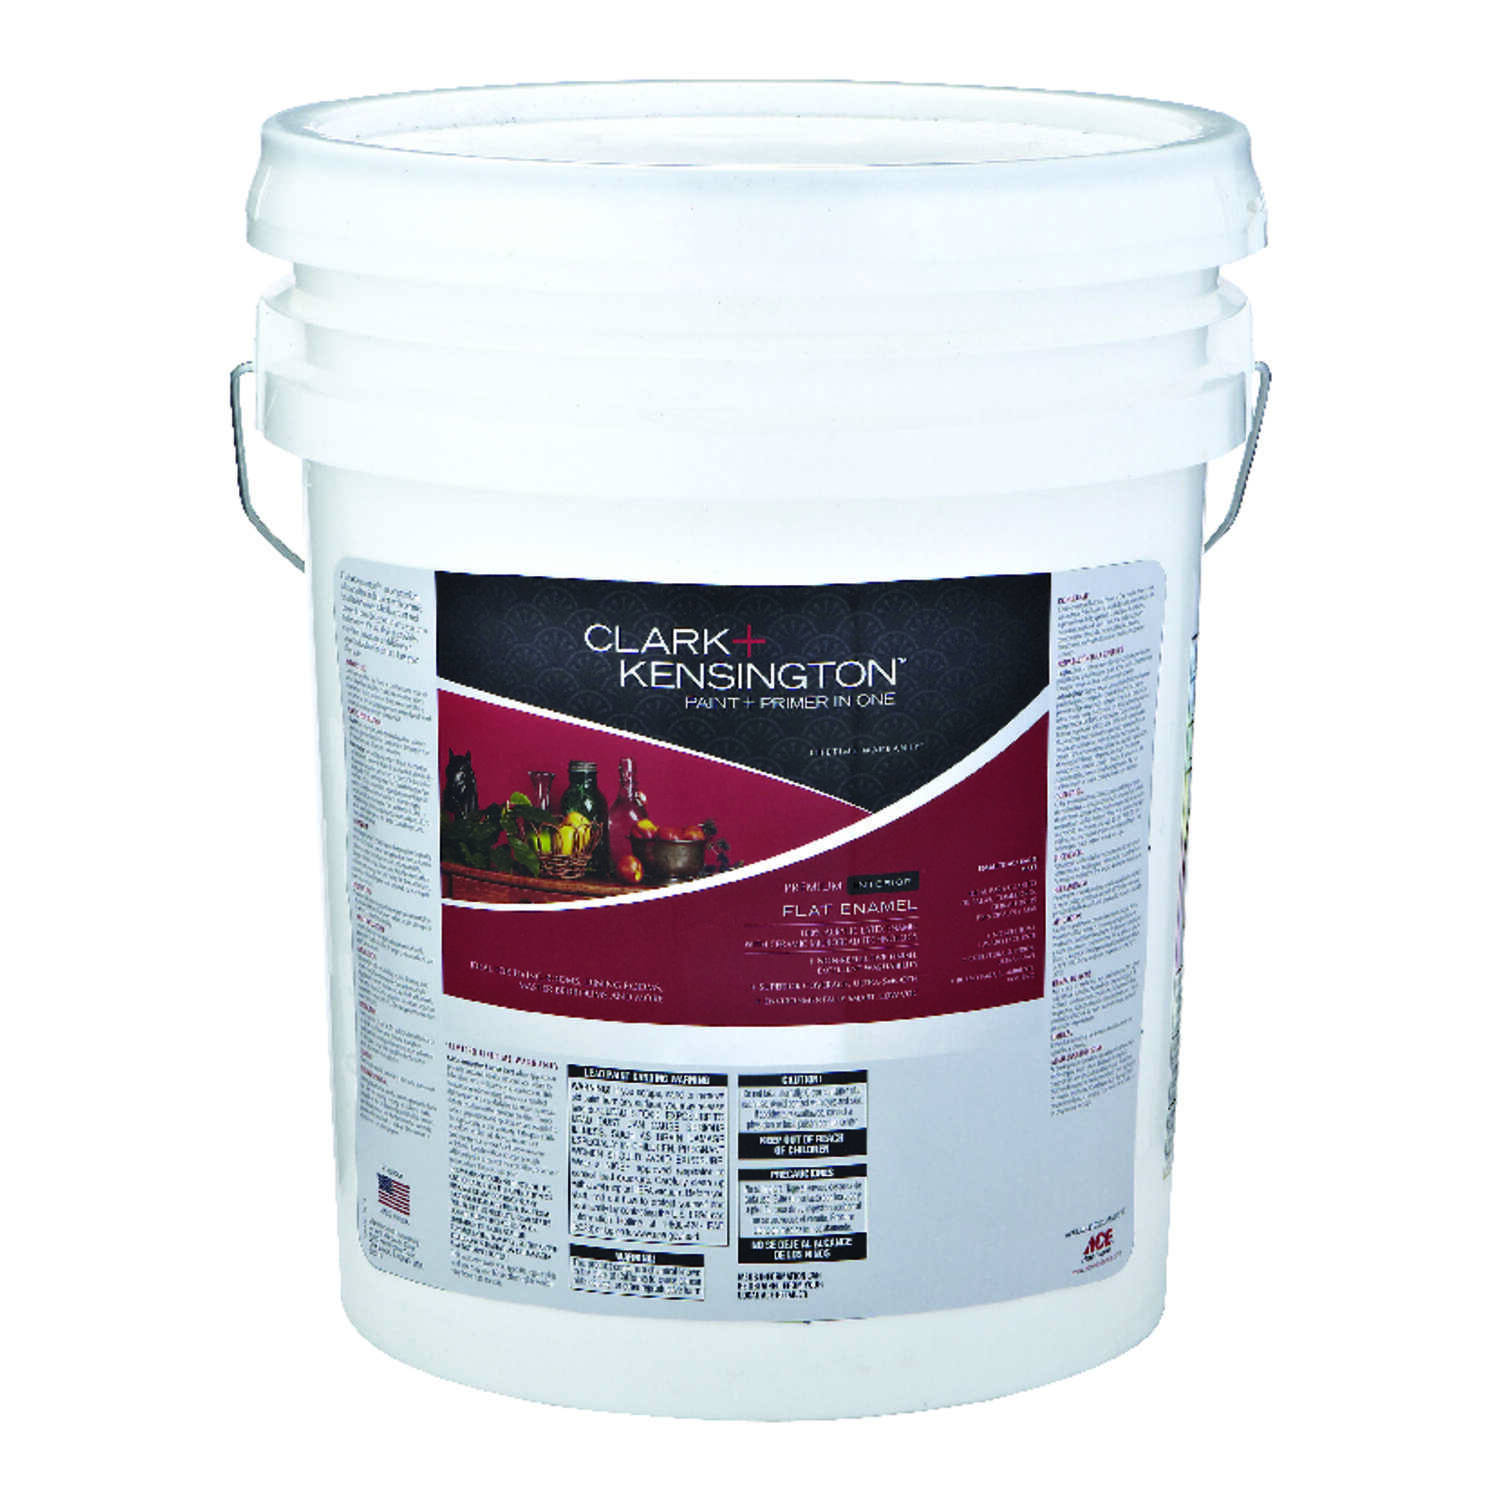 Clark+Kensington  Flat  Tintable Base  Neutral Base  Acrylic Latex  Paint and Primer  5 gal.